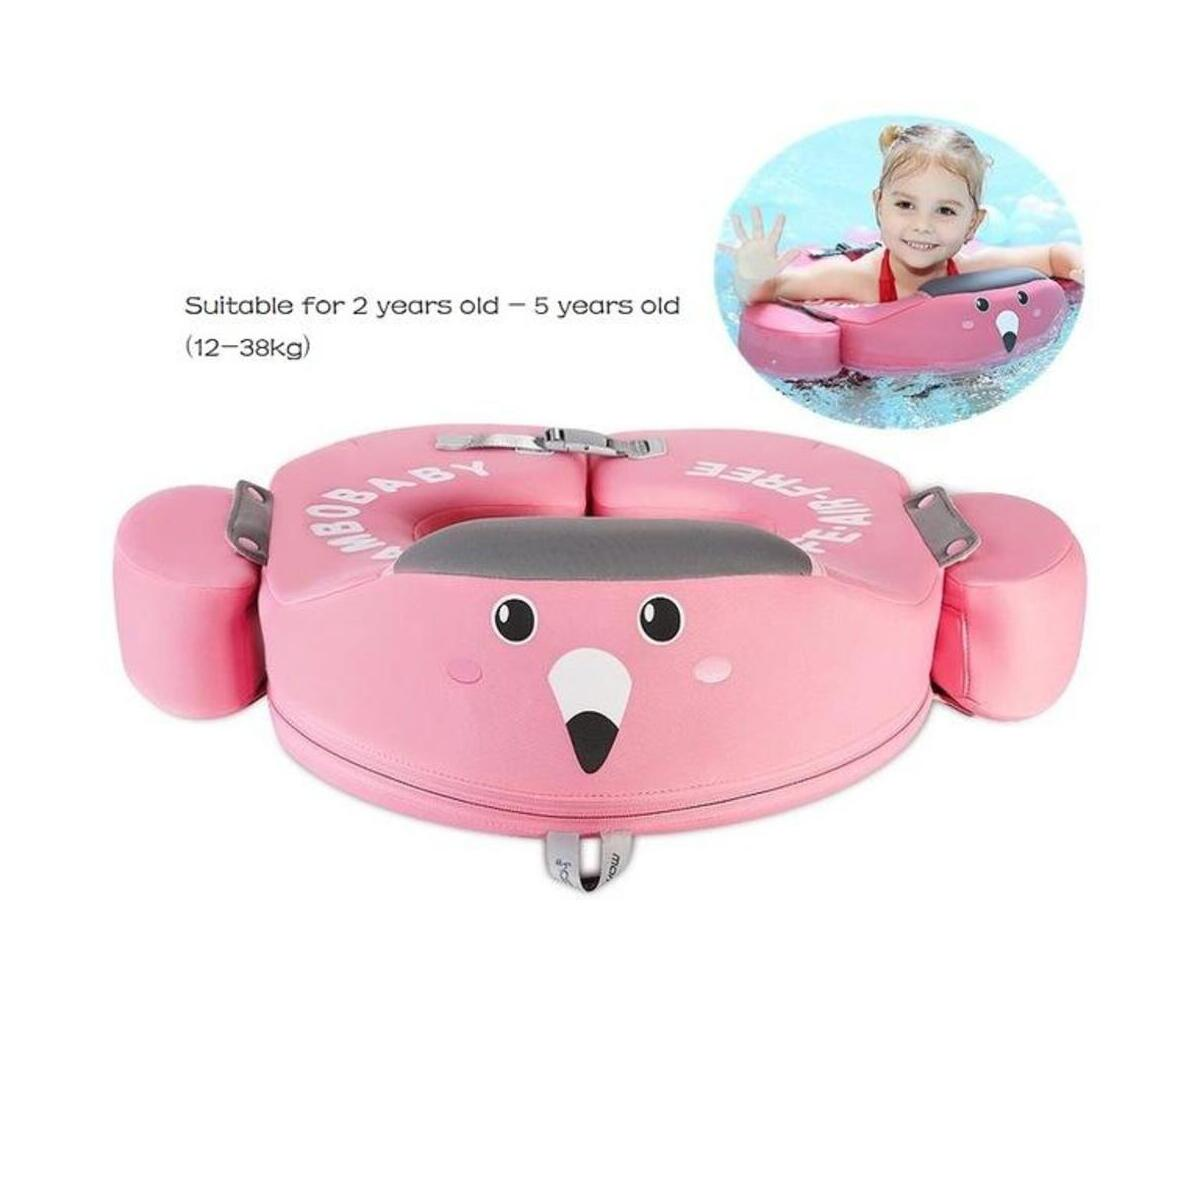 Baby Swimming Ring Safety Non-Inflatable Float Lying Infant Kids Swim Pool Relaxing Shoulder Multifunction Foldable Handsfree Circle Bathing Toys Float Swim Trainer